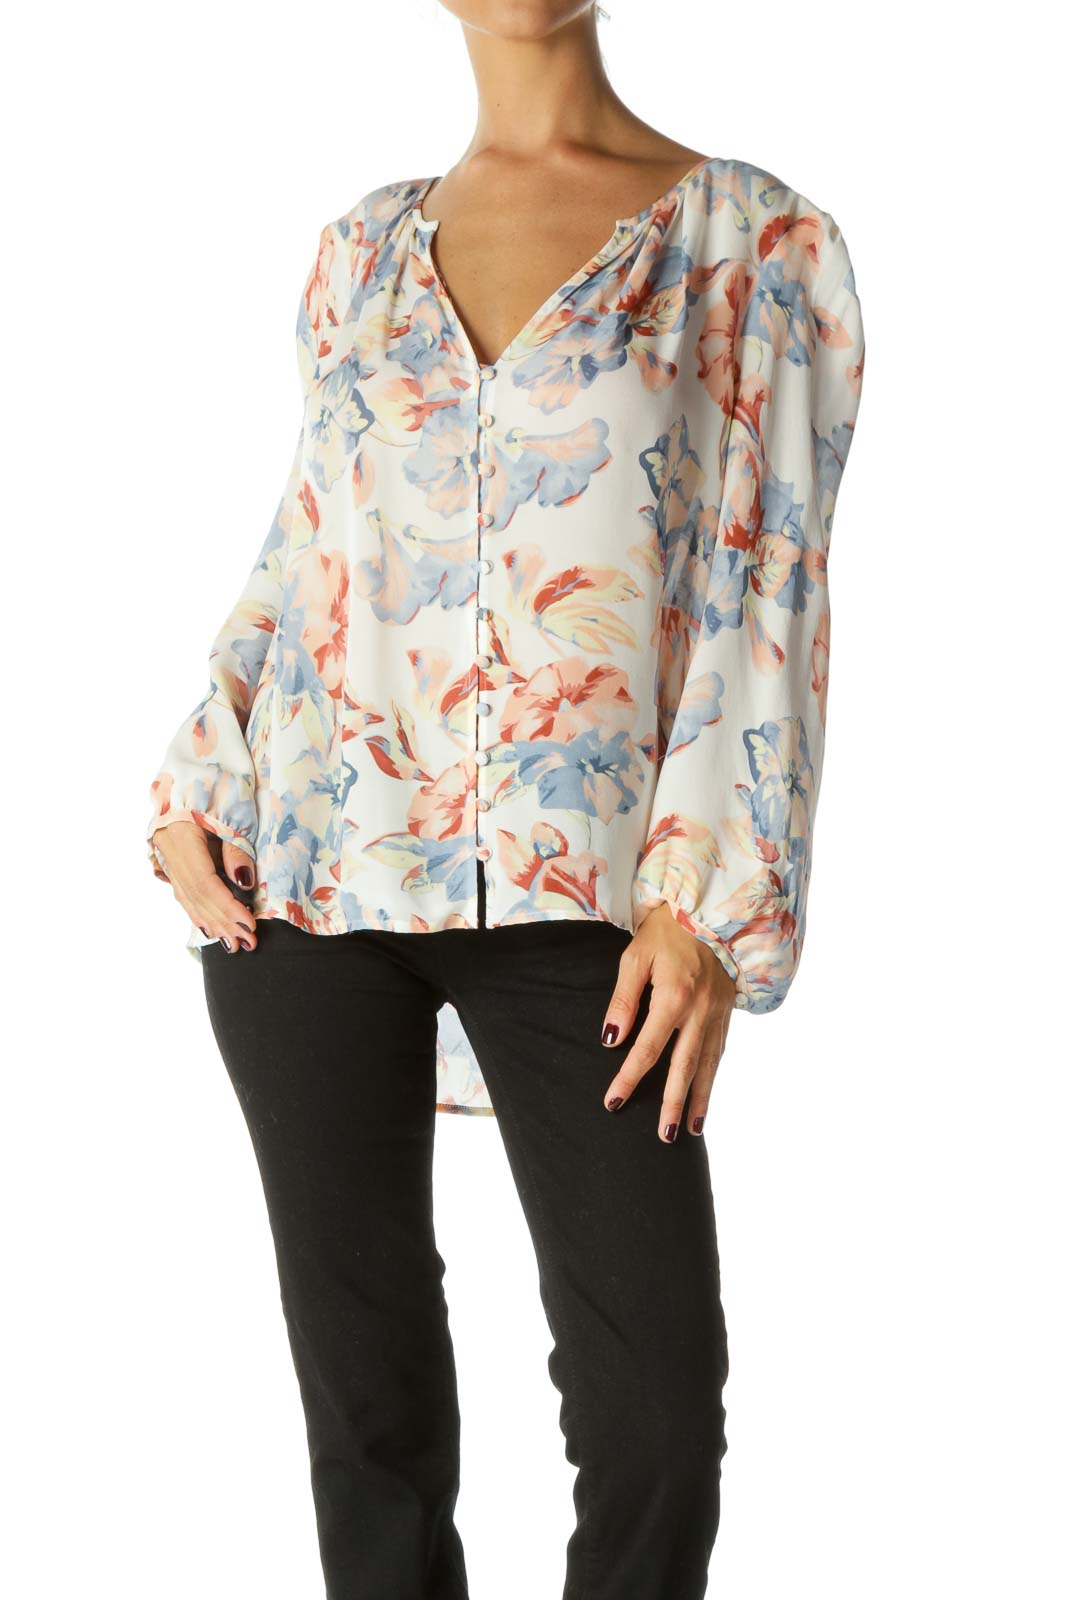 Blue Orange Yellow 100% Silk Floral Print Long Sleeve Blouse